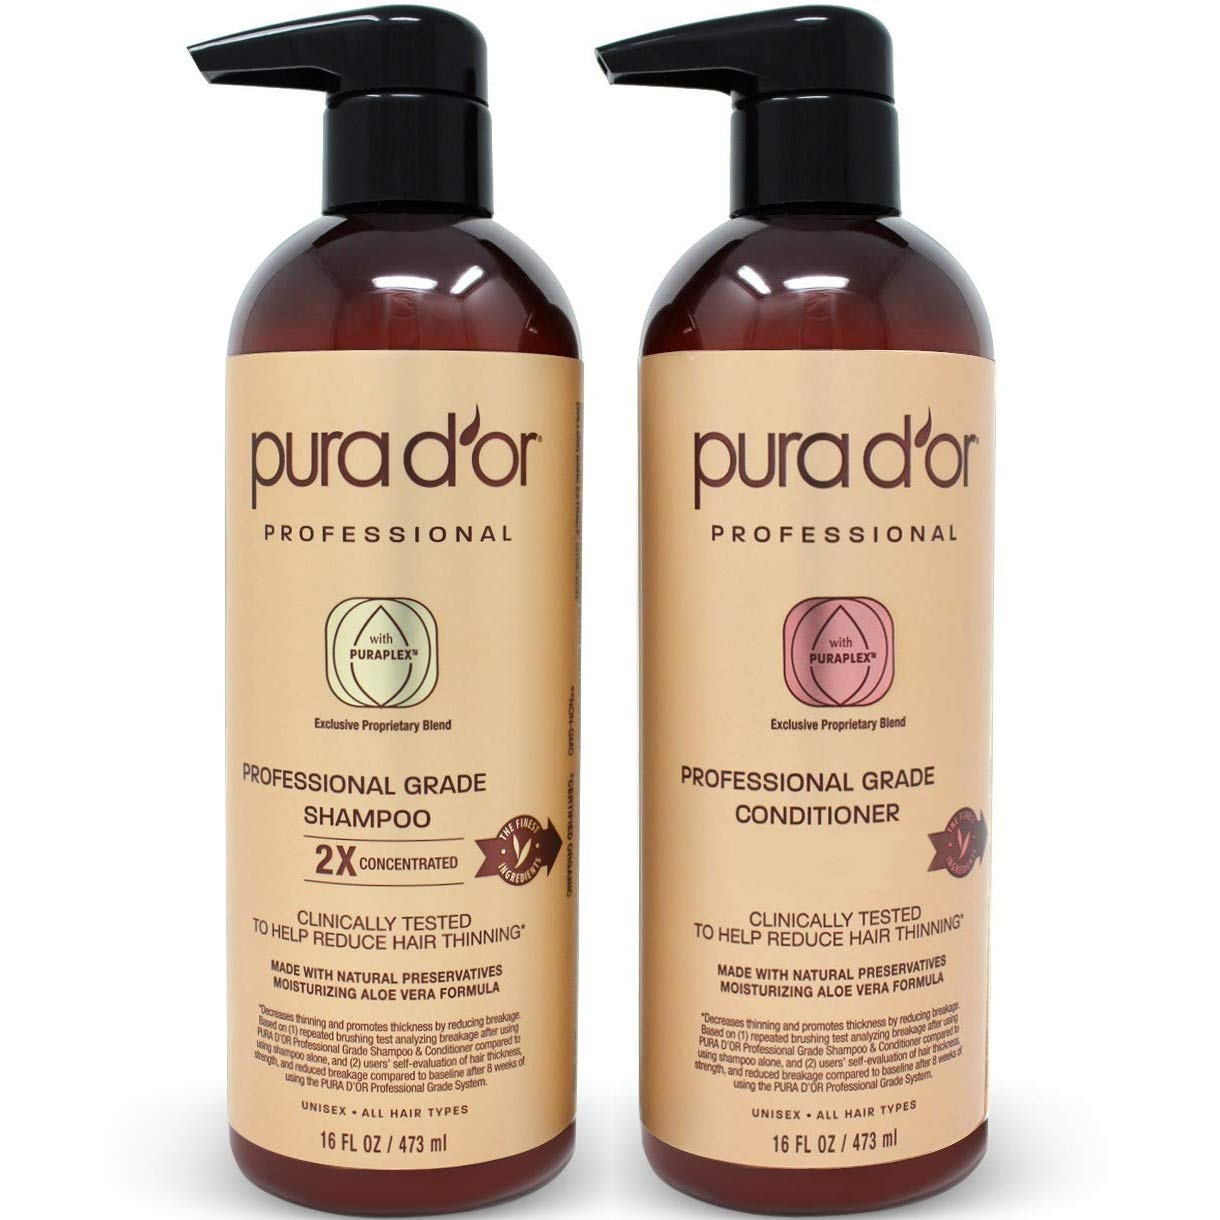 PURA D'OR Professional Grade Golden Biotin Anti-Hair Thinning 2X Concentrated Actives Shampoo & Conditioner Set, Sulfate Free, Natural Ingredients, Clinically Tested, Men & Women (Packaging may vary)